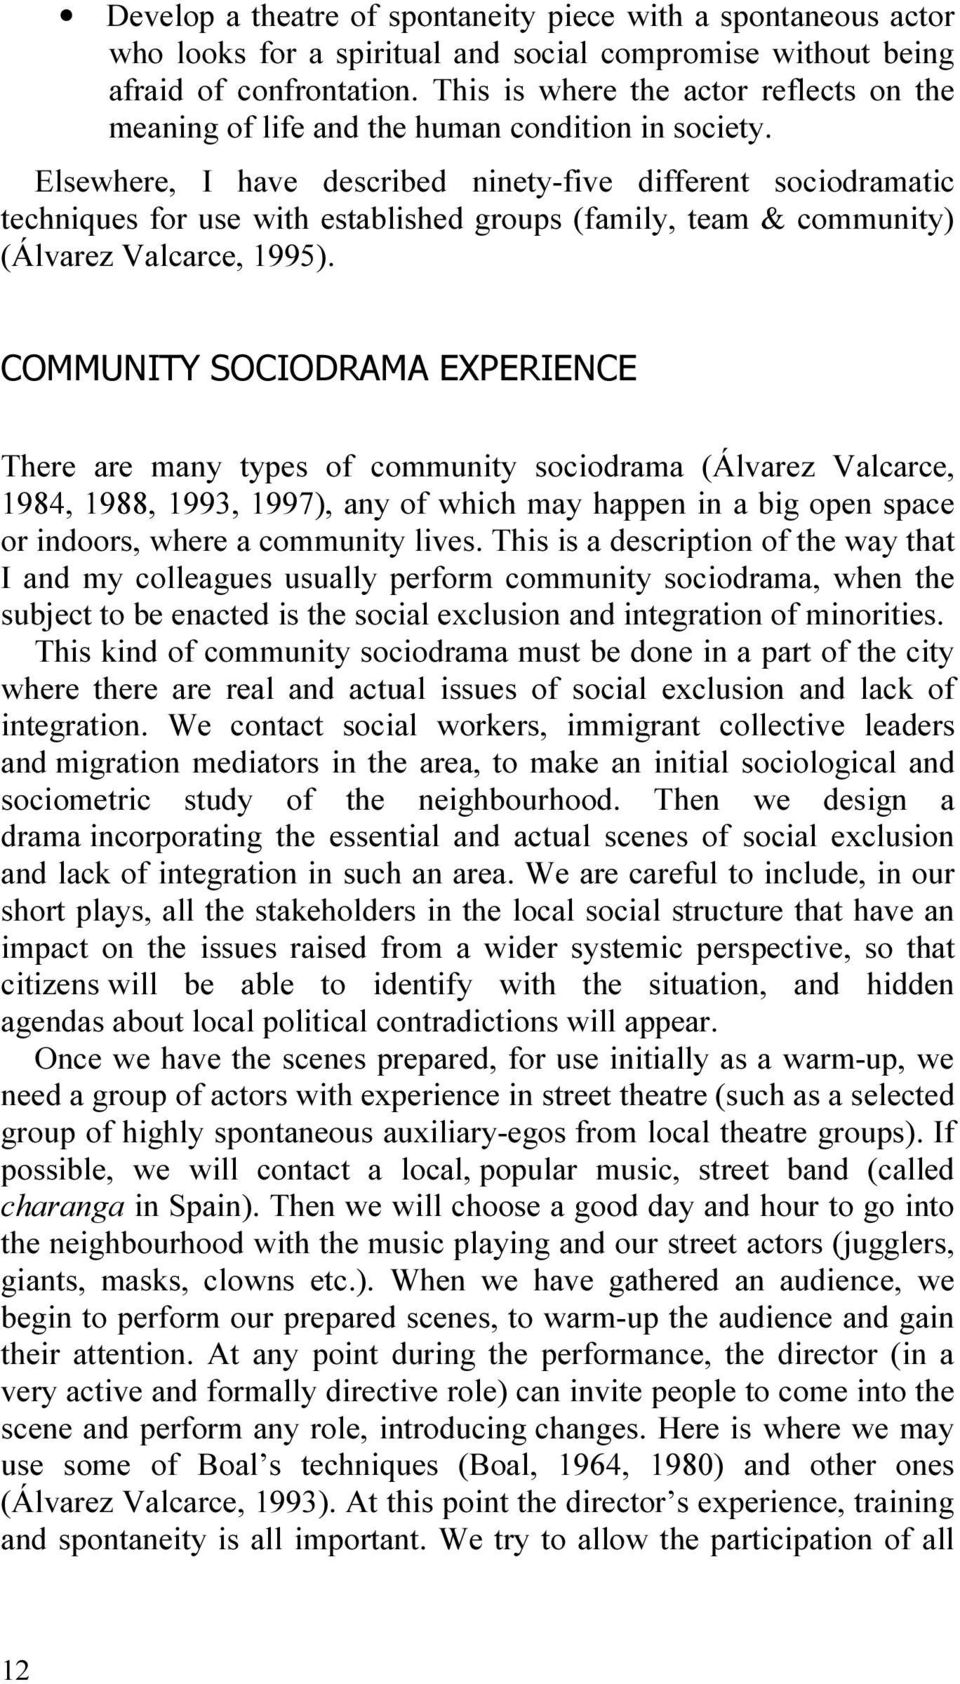 Elsewhere, I have described ninety-five different sociodramatic techniques for use with established groups (family, team & community) (Álvarez Valcarce, 1995).